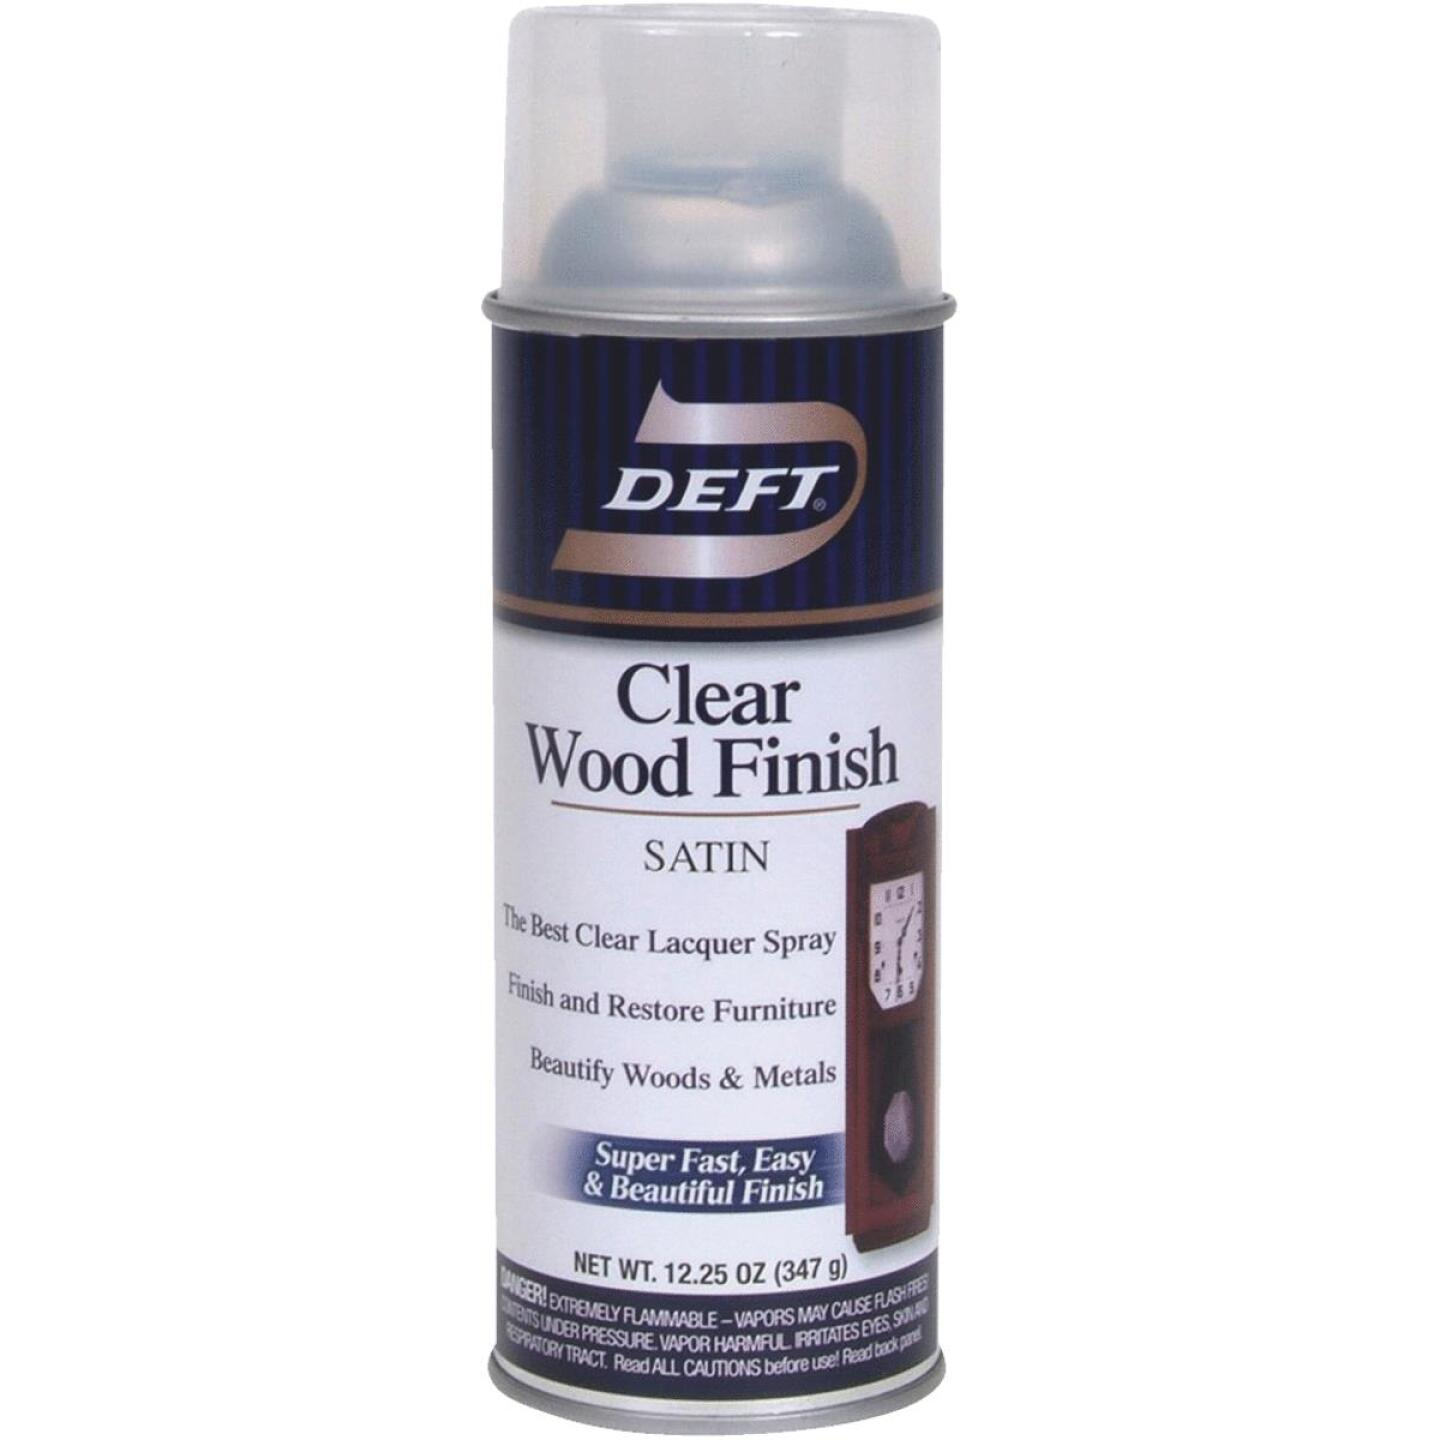 Deft 12.25 Oz. Satin Clear Wood Finish Interior Spray Lacquer Image 1